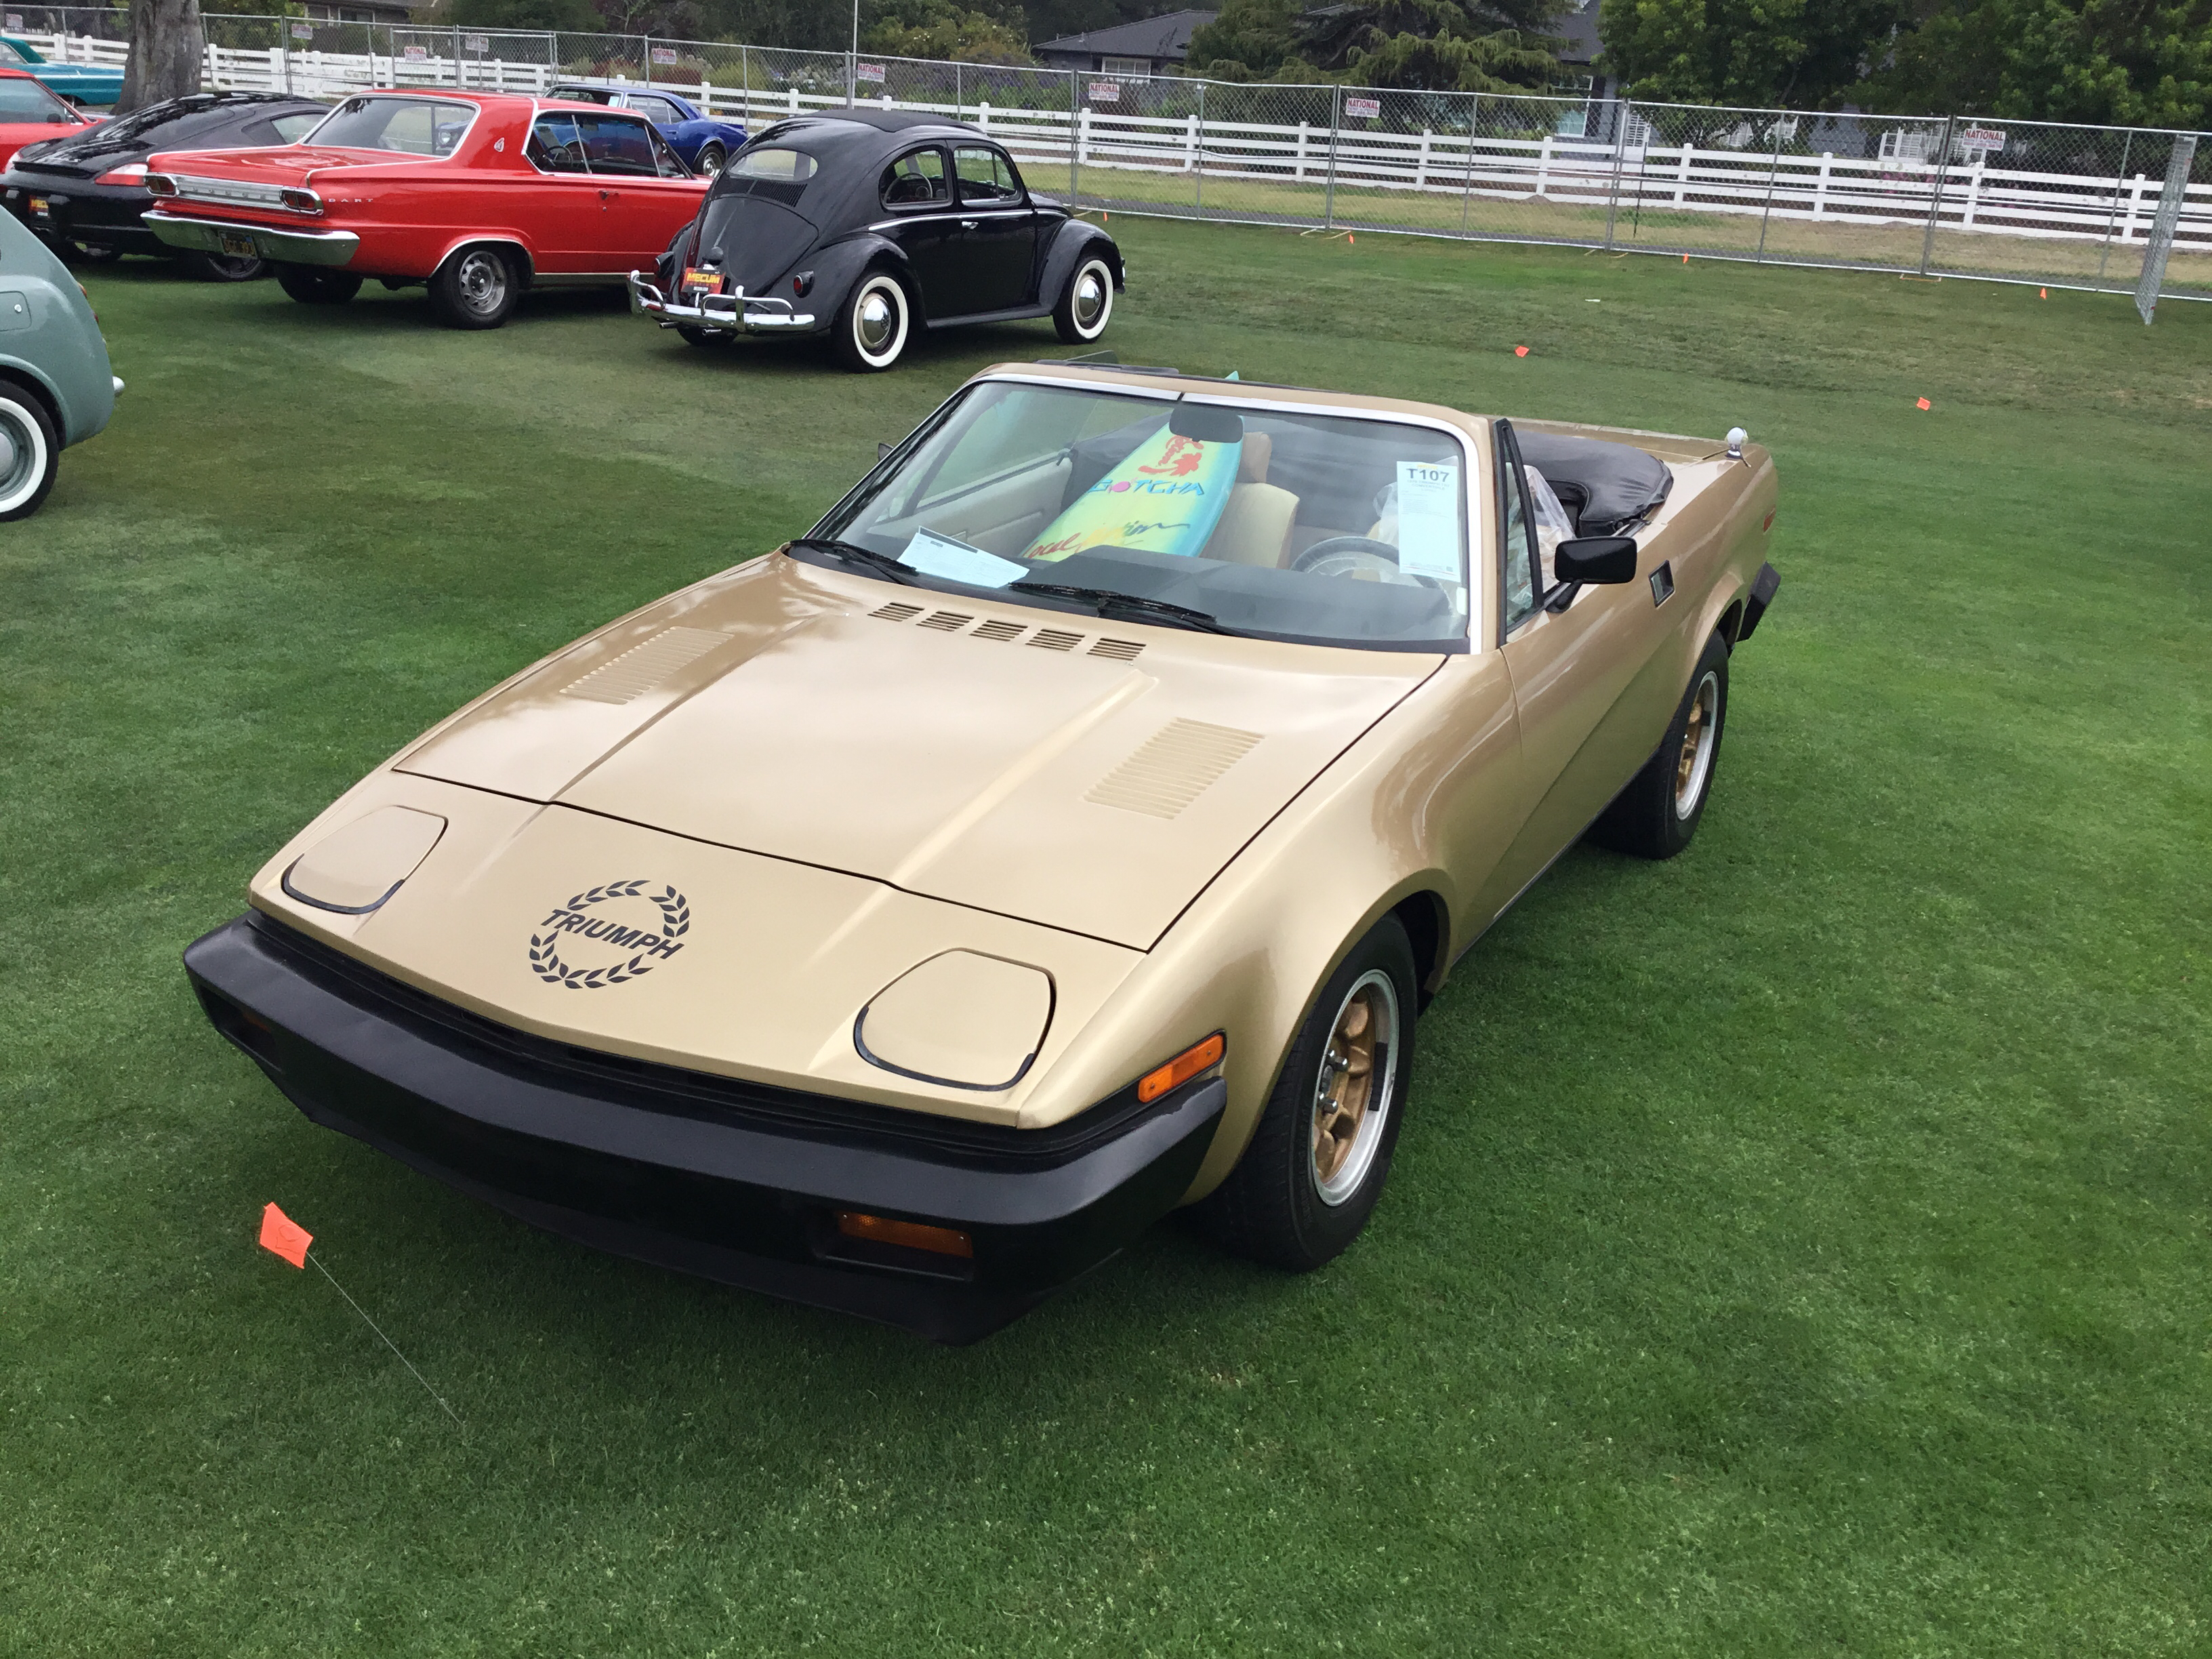 1980 Triumph Tr7 Values Hagerty Valuation Tool